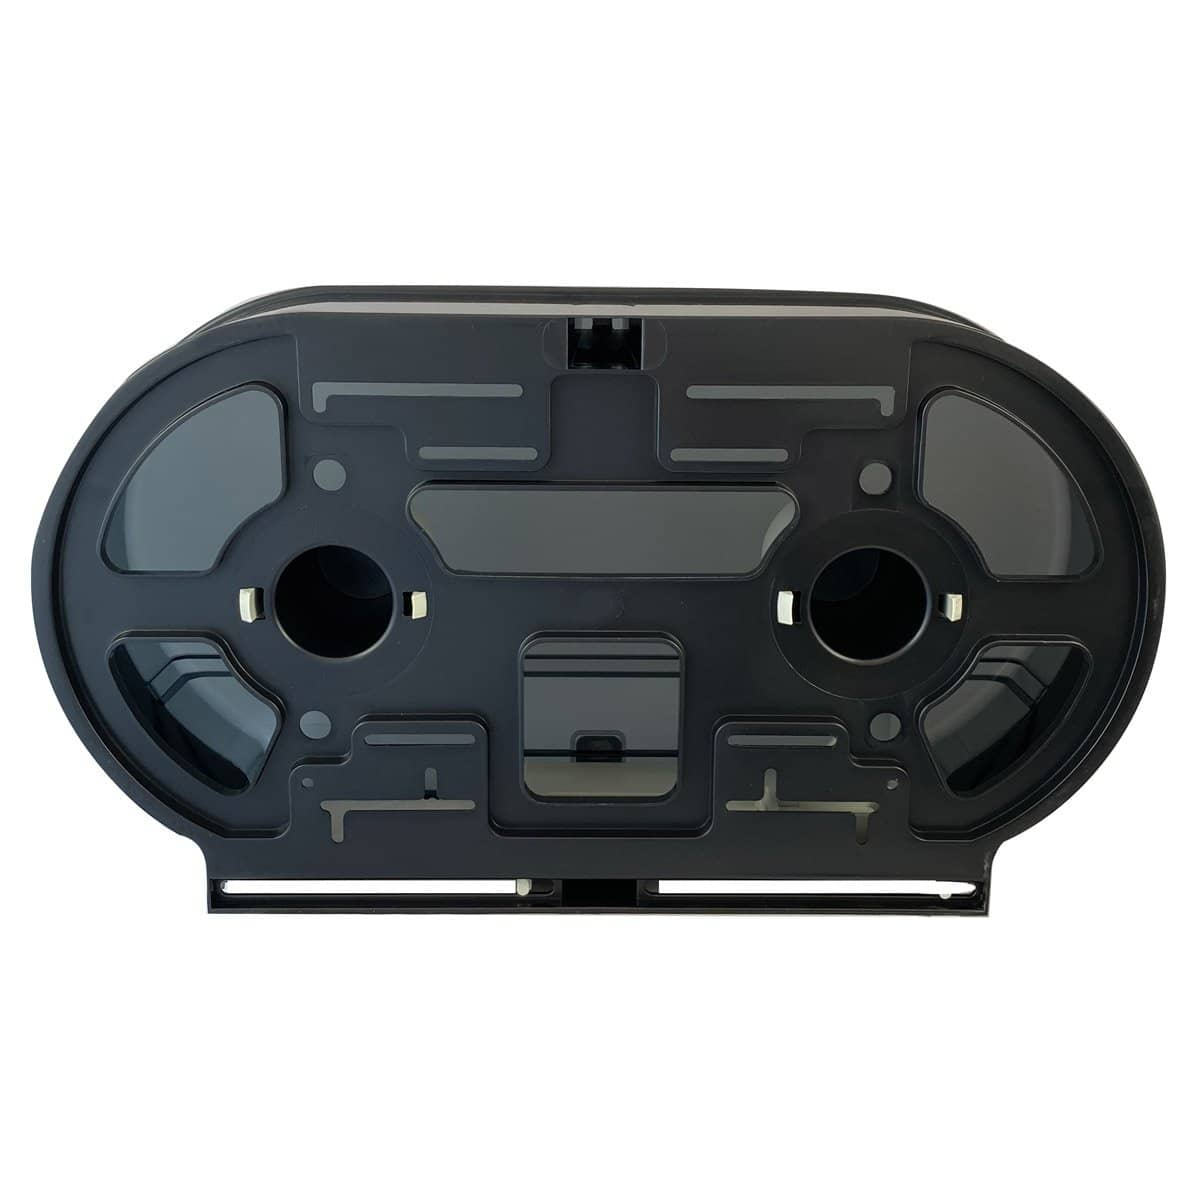 VISTA Double Jumbo TP Dispenser, Black Translucent - TP3002 - TotalRestroom.com